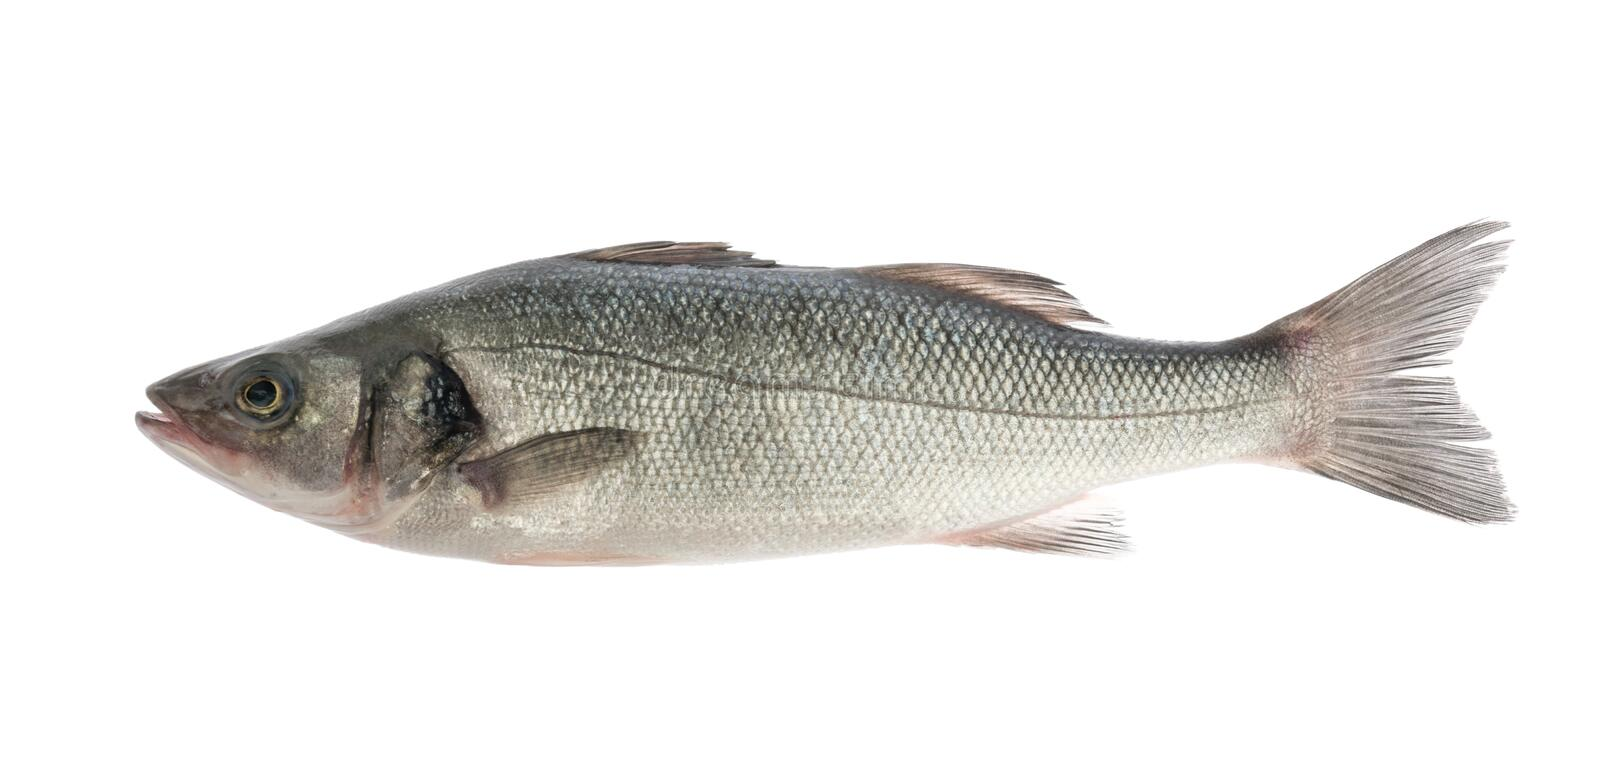 Sea bass fish isolated on white background stock photos